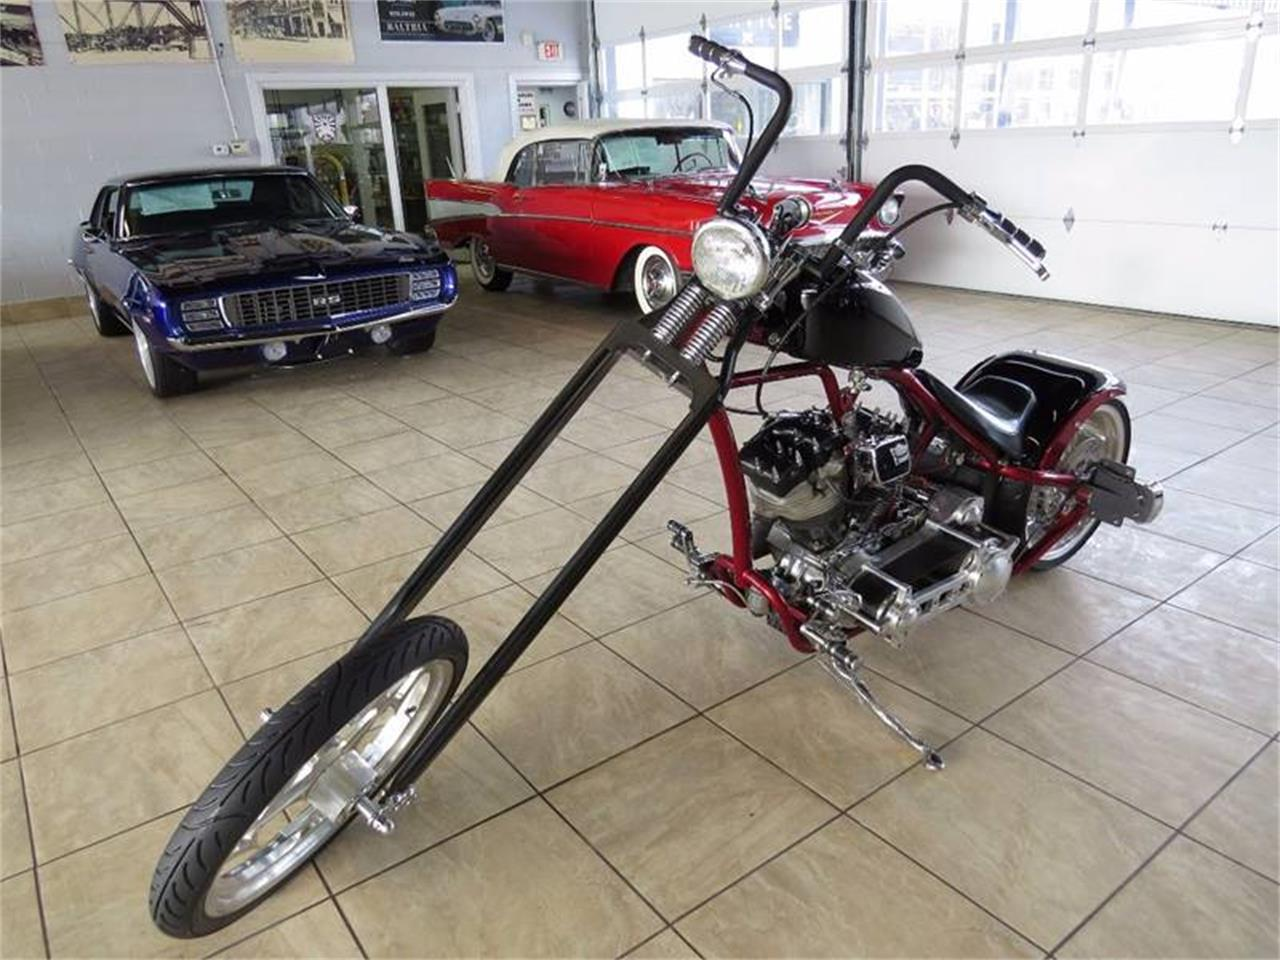 2012 Harley-Davidson Motorcycle for sale in St. Charles, IL – photo 5